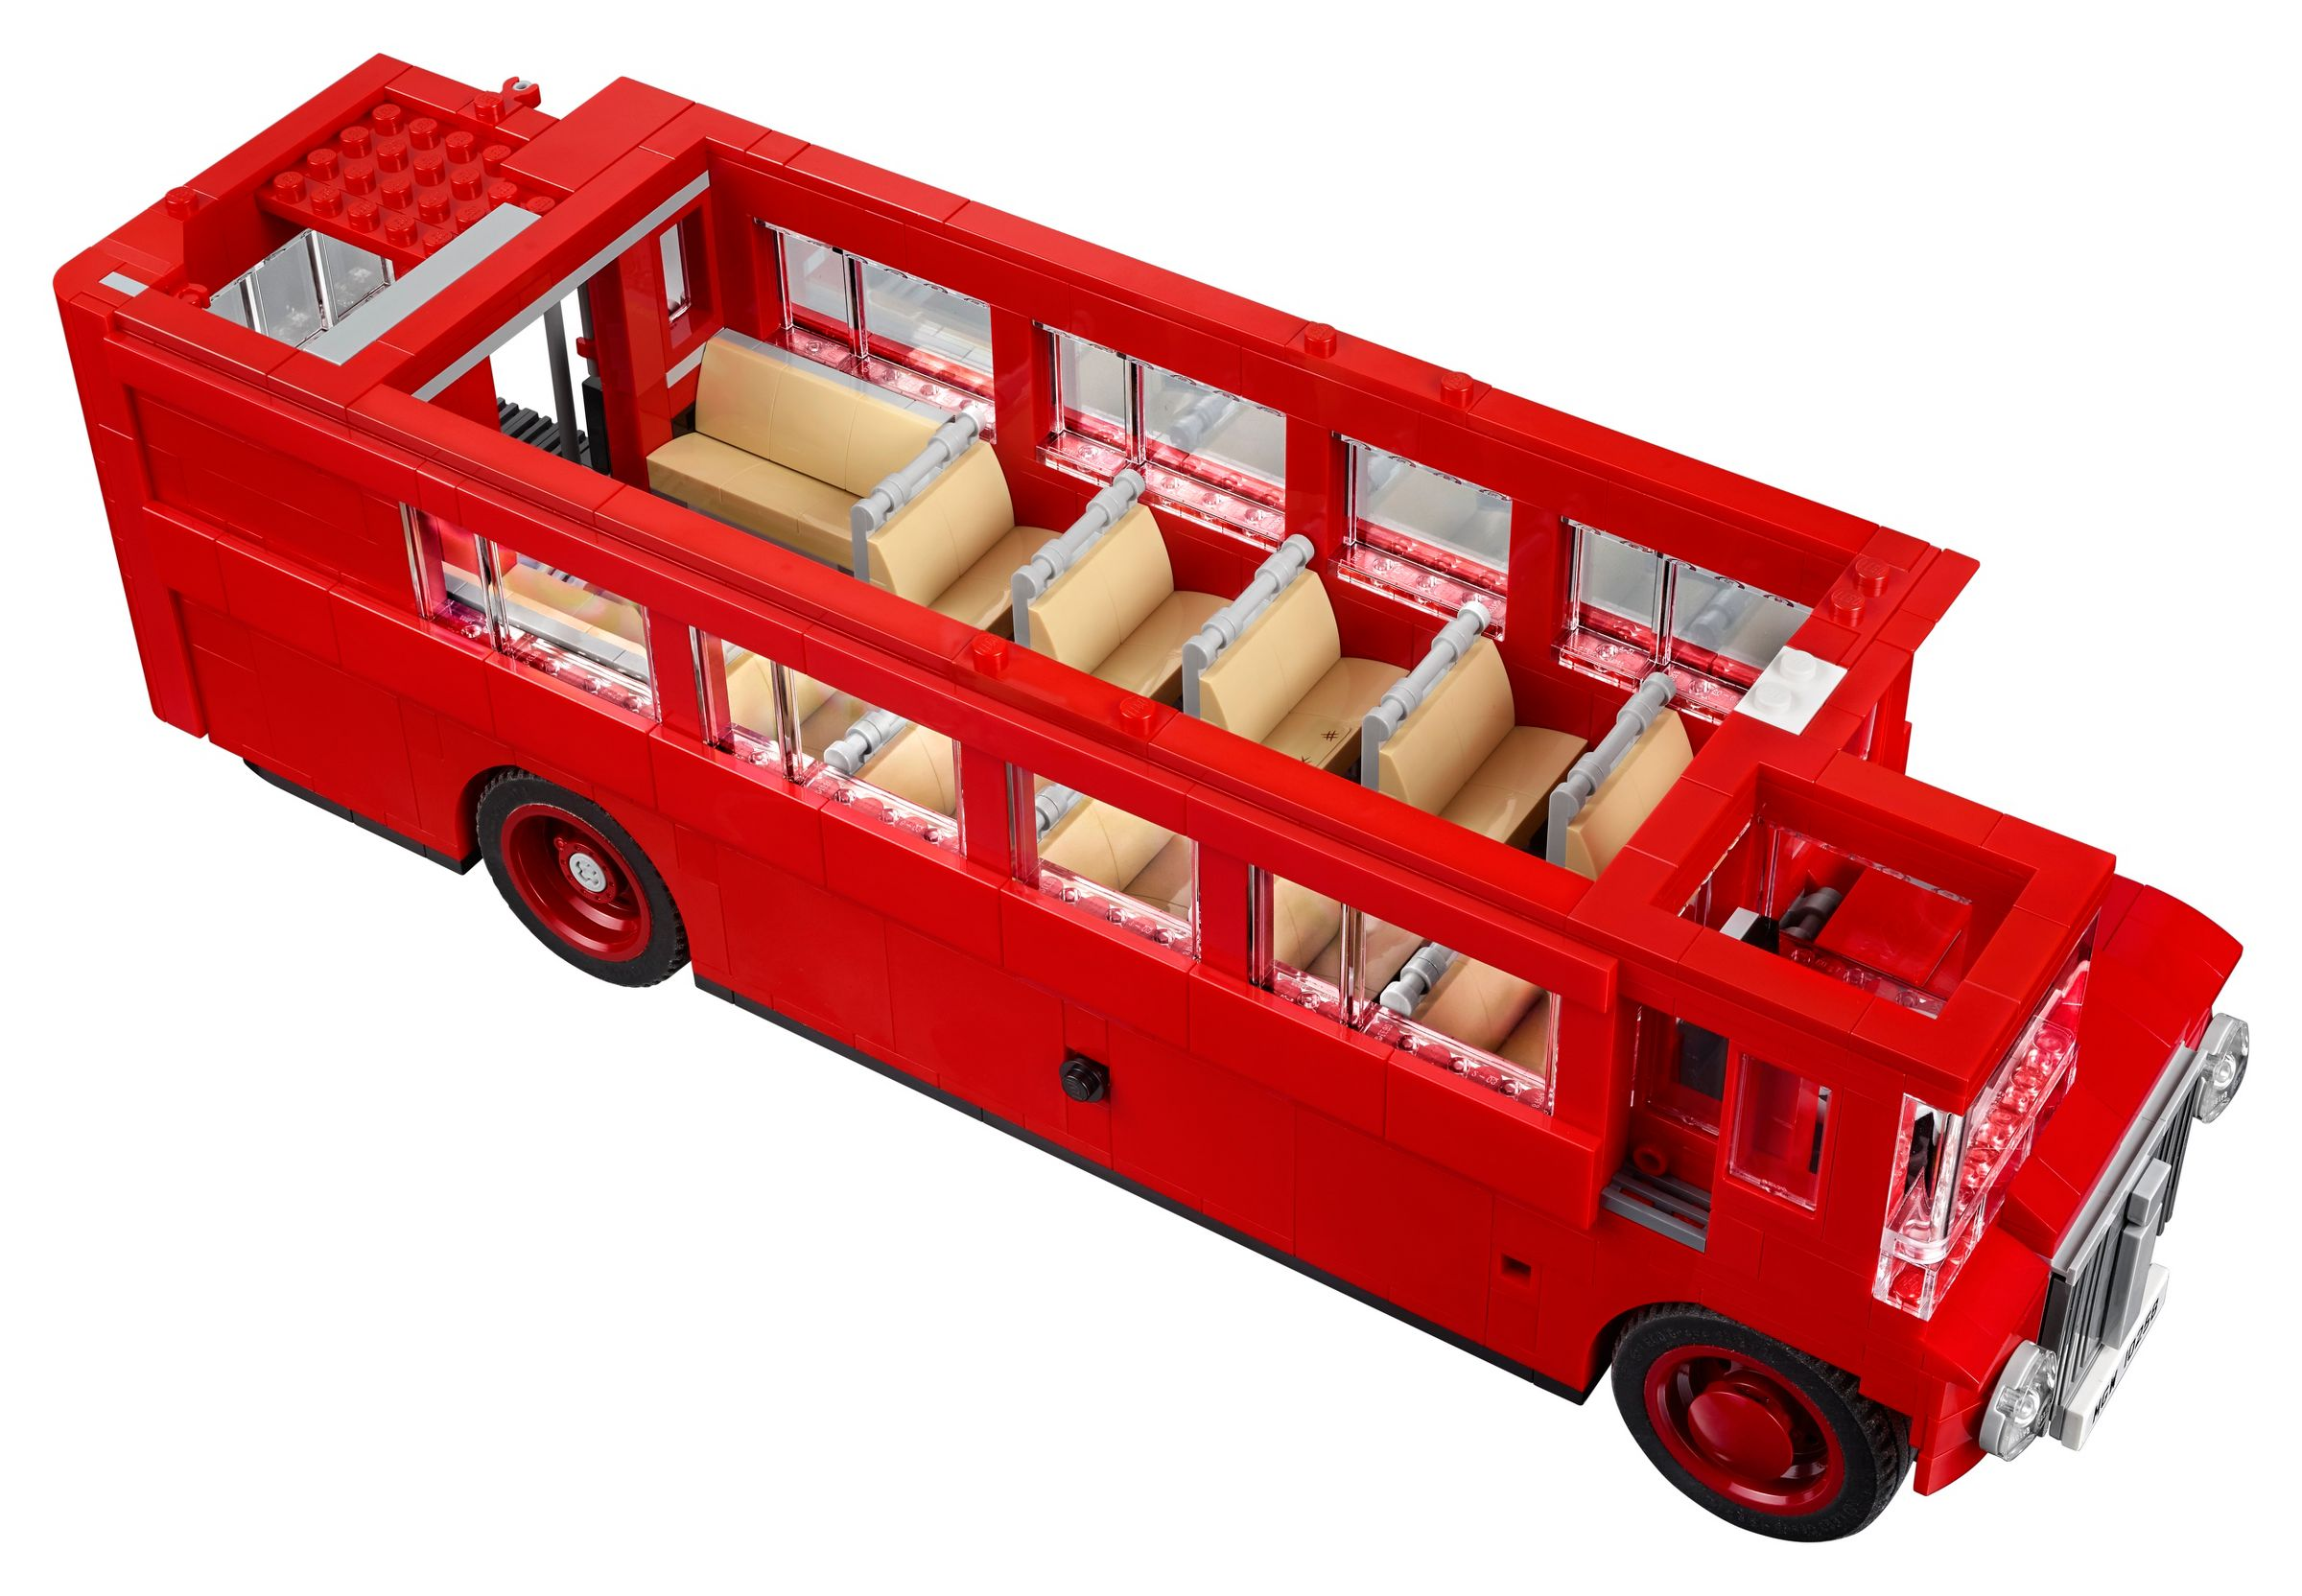 LEGO Advanced Models 10258 Doppeldecker Bus LEGO_10258_alt10.jpg